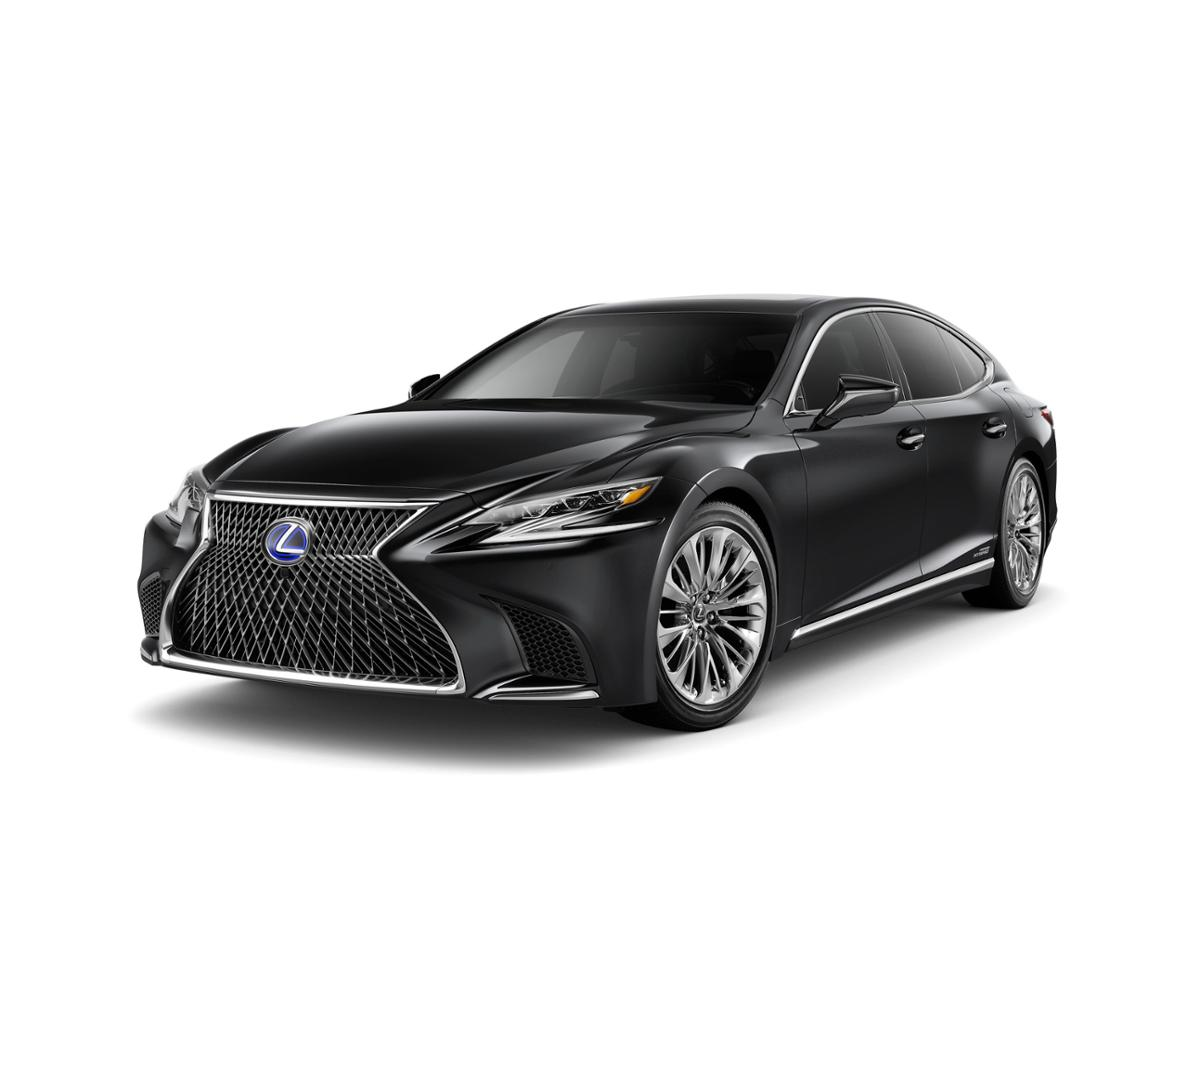 2018 Lexus LS 500h Vehicle Photo in Mission Viejo, CA 92692